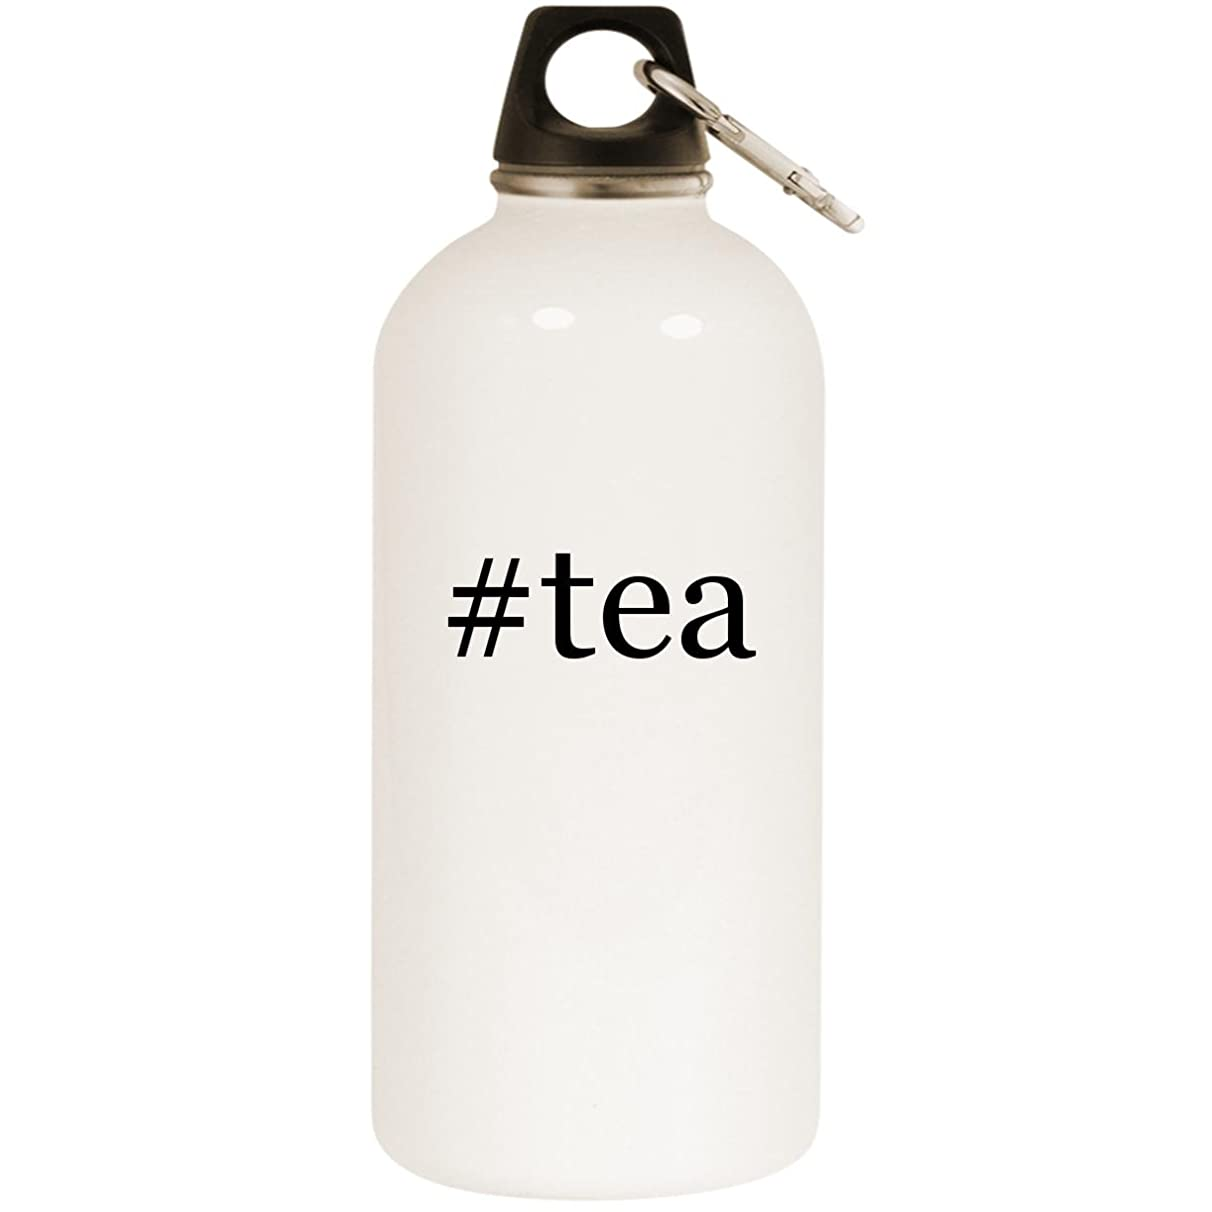 Molandra Products #Tea - White Hashtag 20oz Stainless Steel Water Bottle with Carabiner